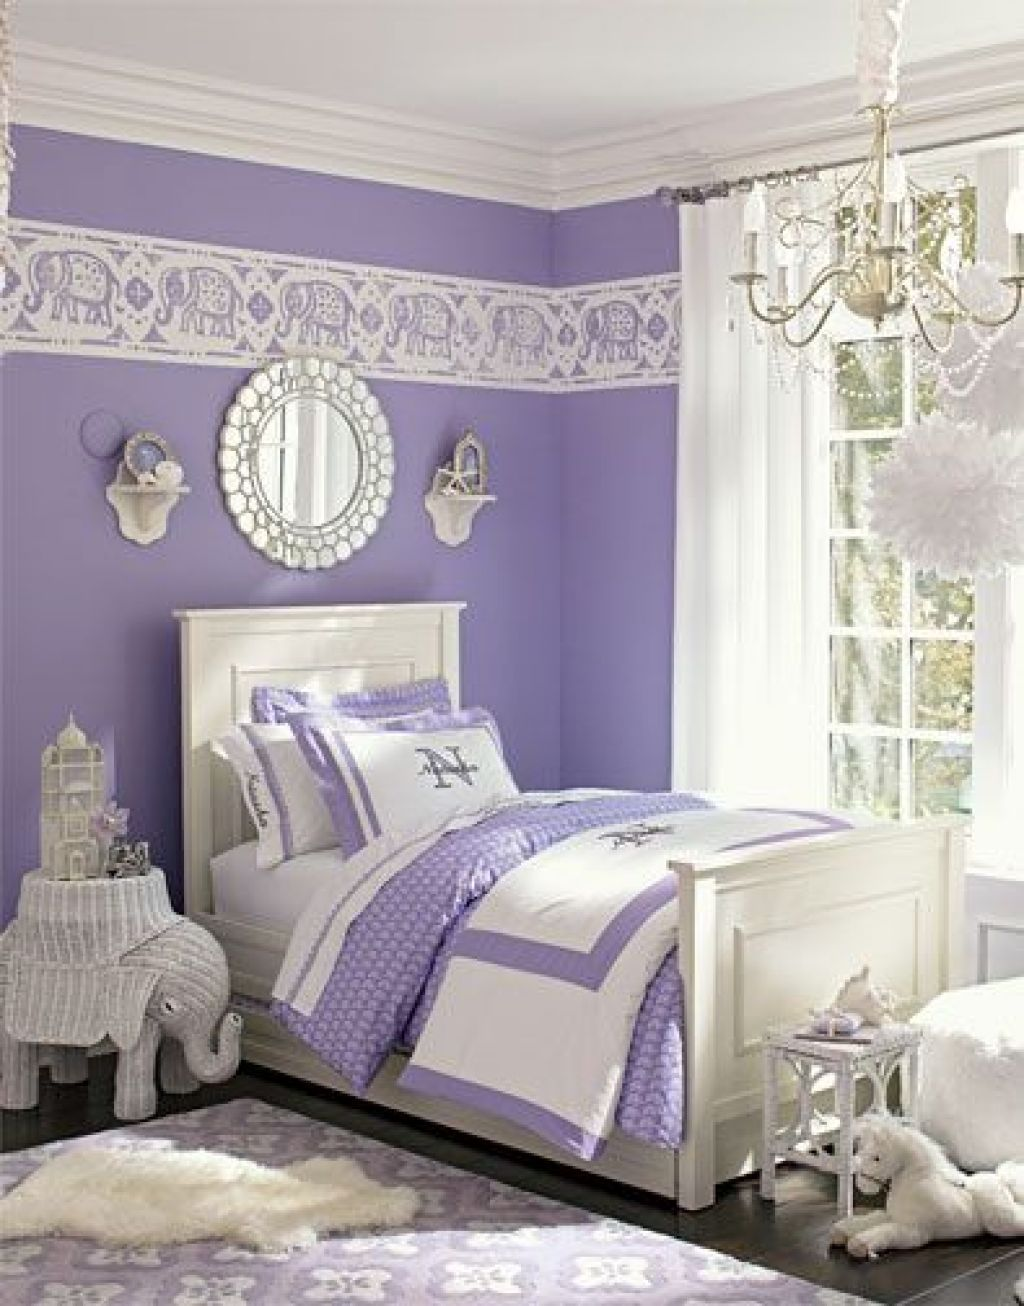 Teenage Girl Bedroom Ideas With Purple Color Wall And Border And